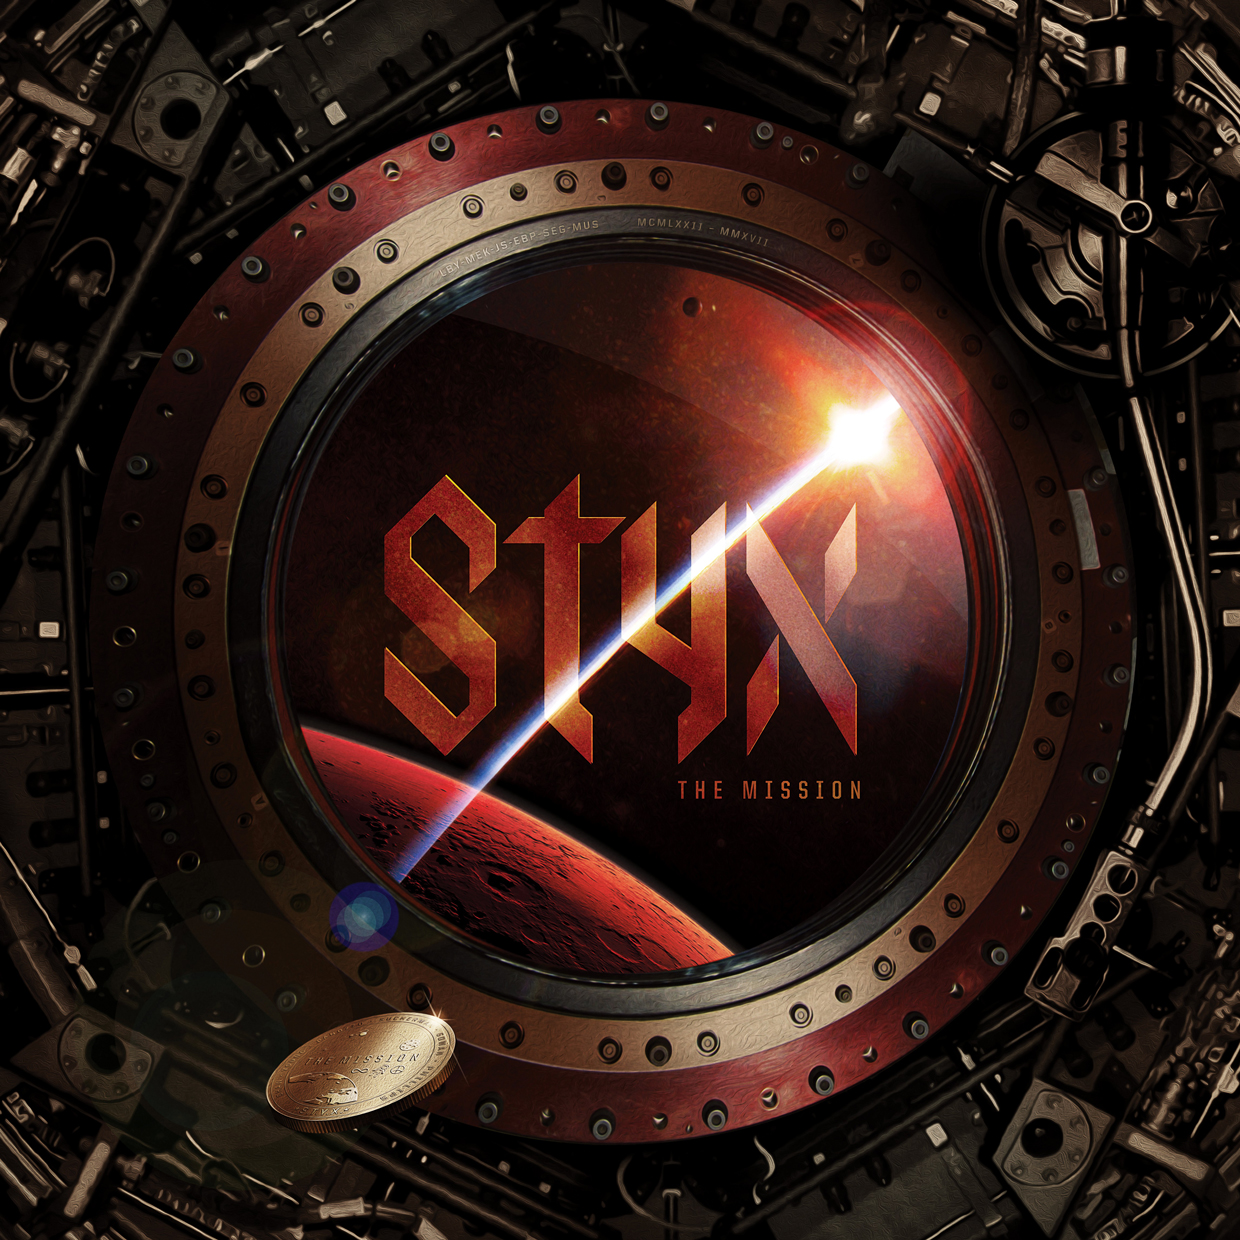 Styx – The Mission (Album Review)